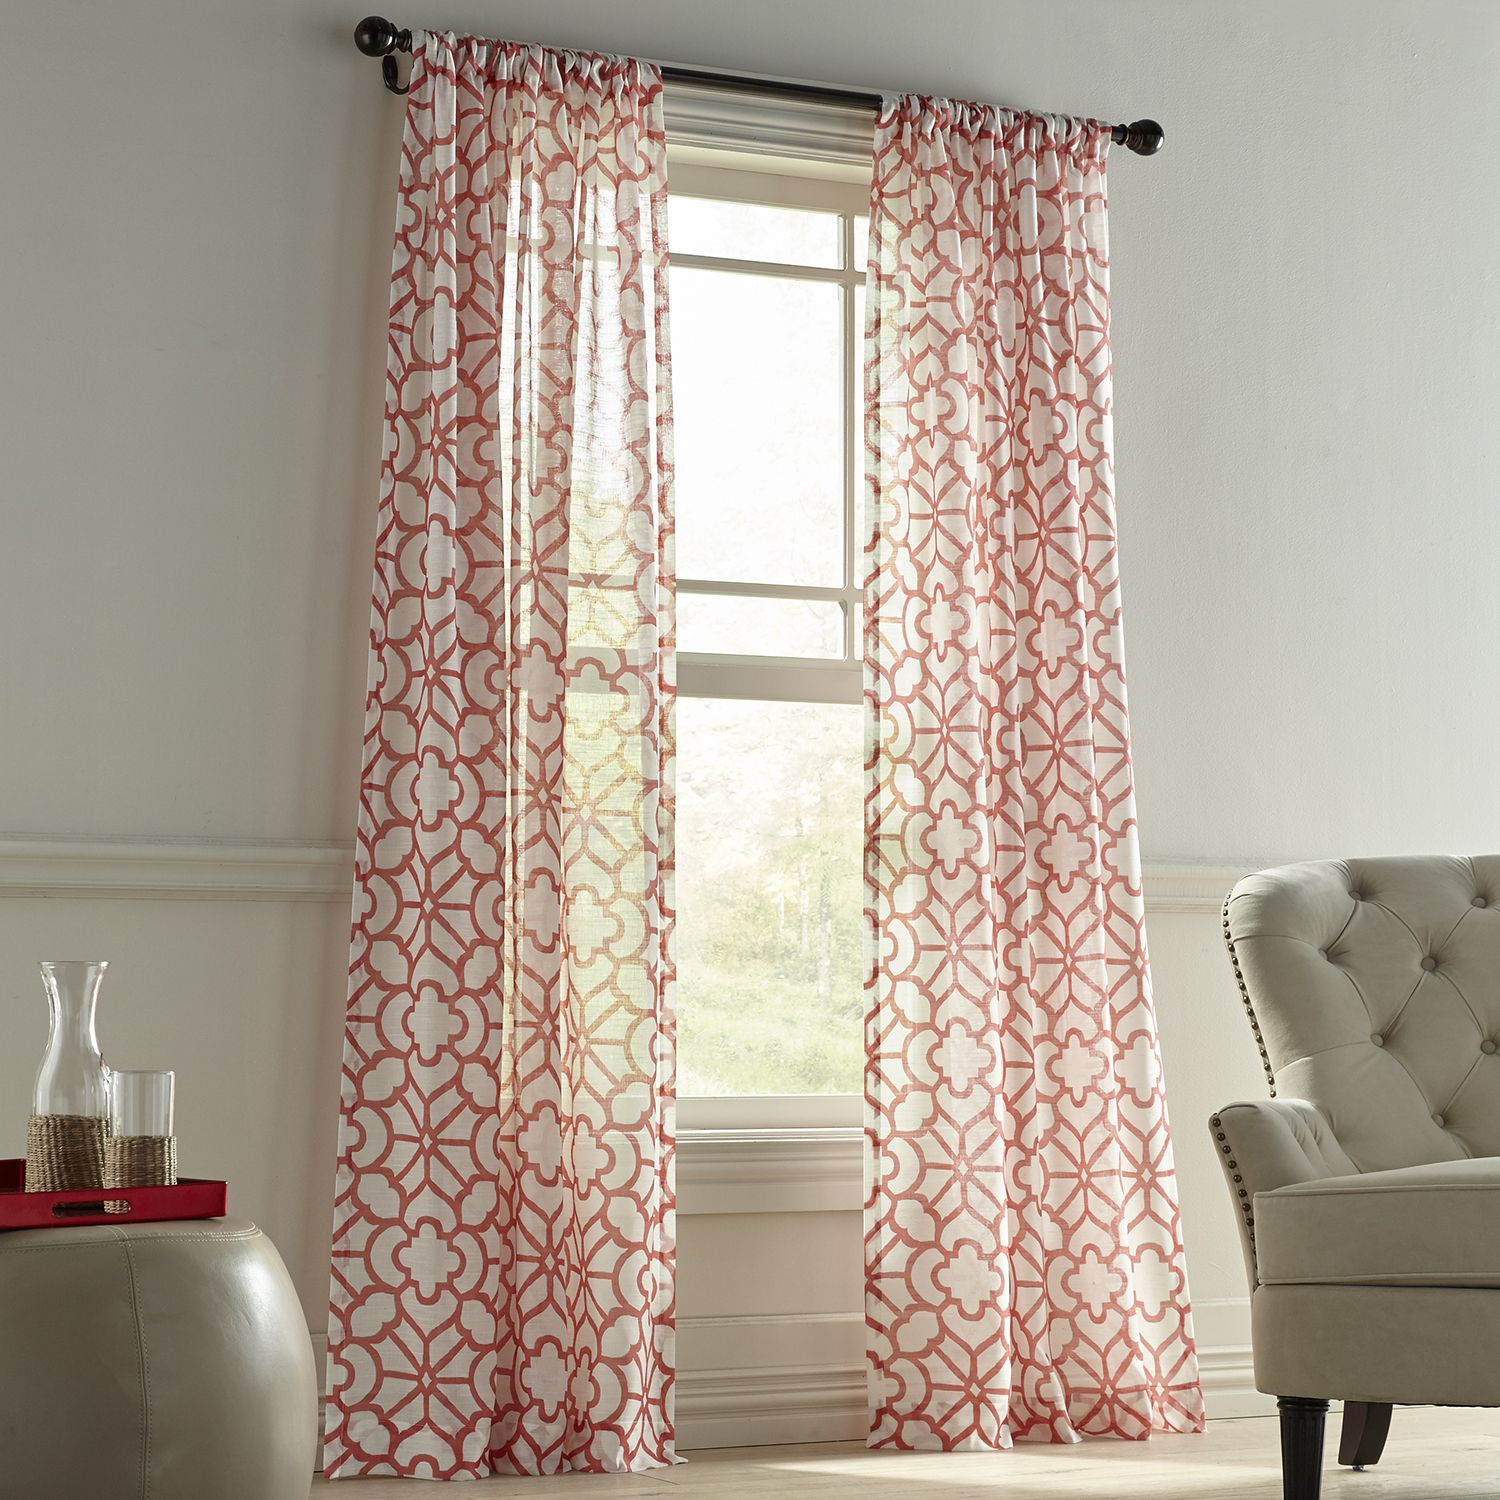 To Continue With The Coral Theme I Went With This Fun Pattern To Lighten The Feel Of The Room Panel Curtains Curtains Coral Curtains